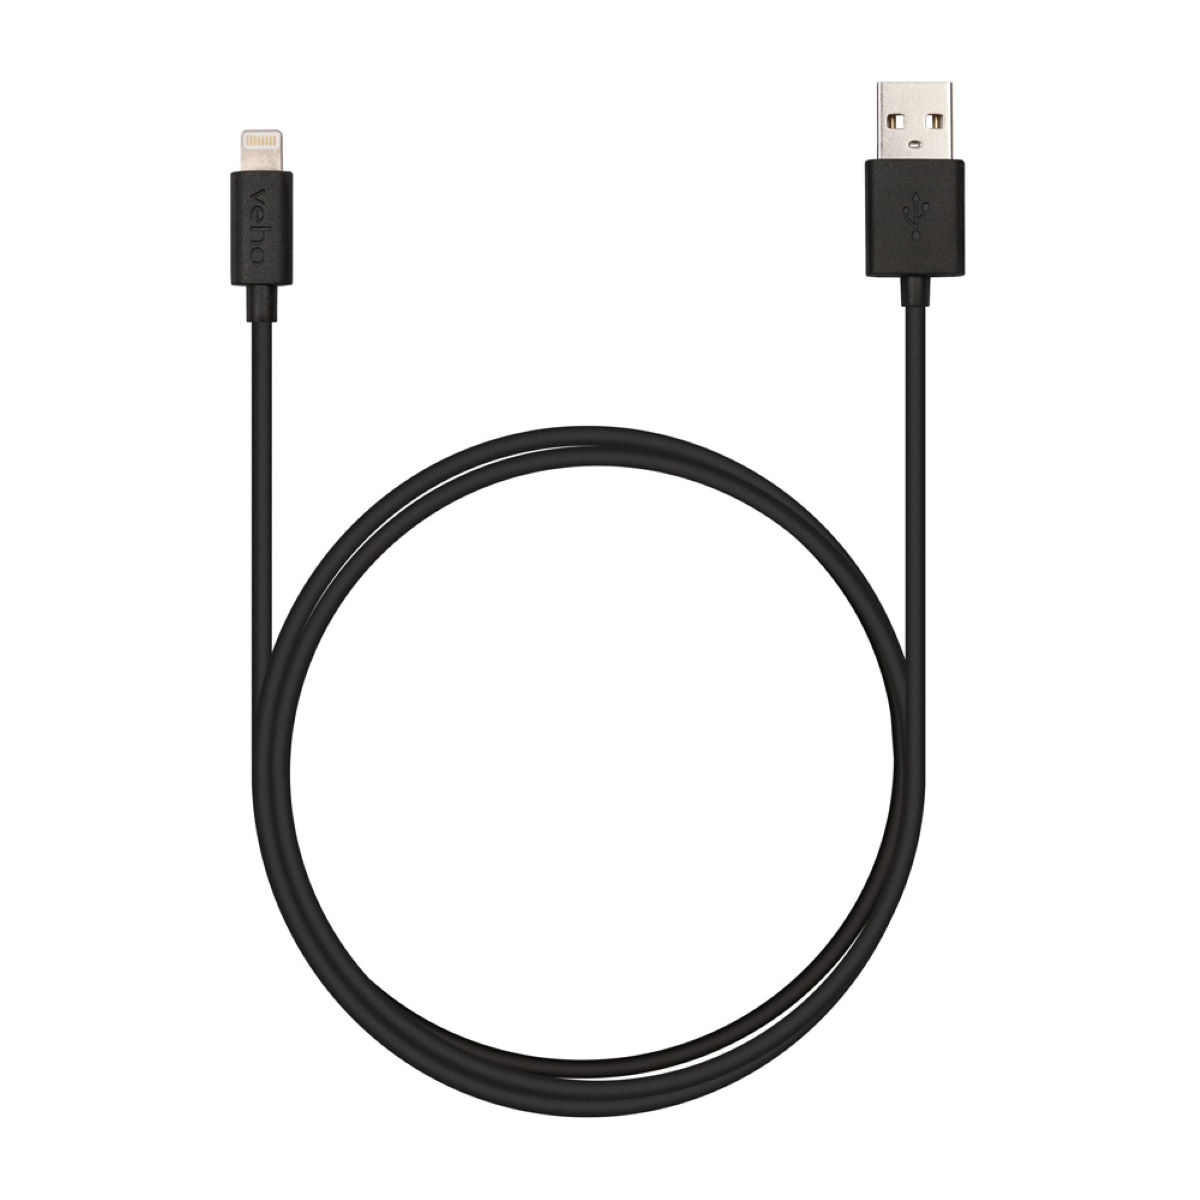 Veho Pebble Apple Lightning Cable (1m) - Cables de alimentación